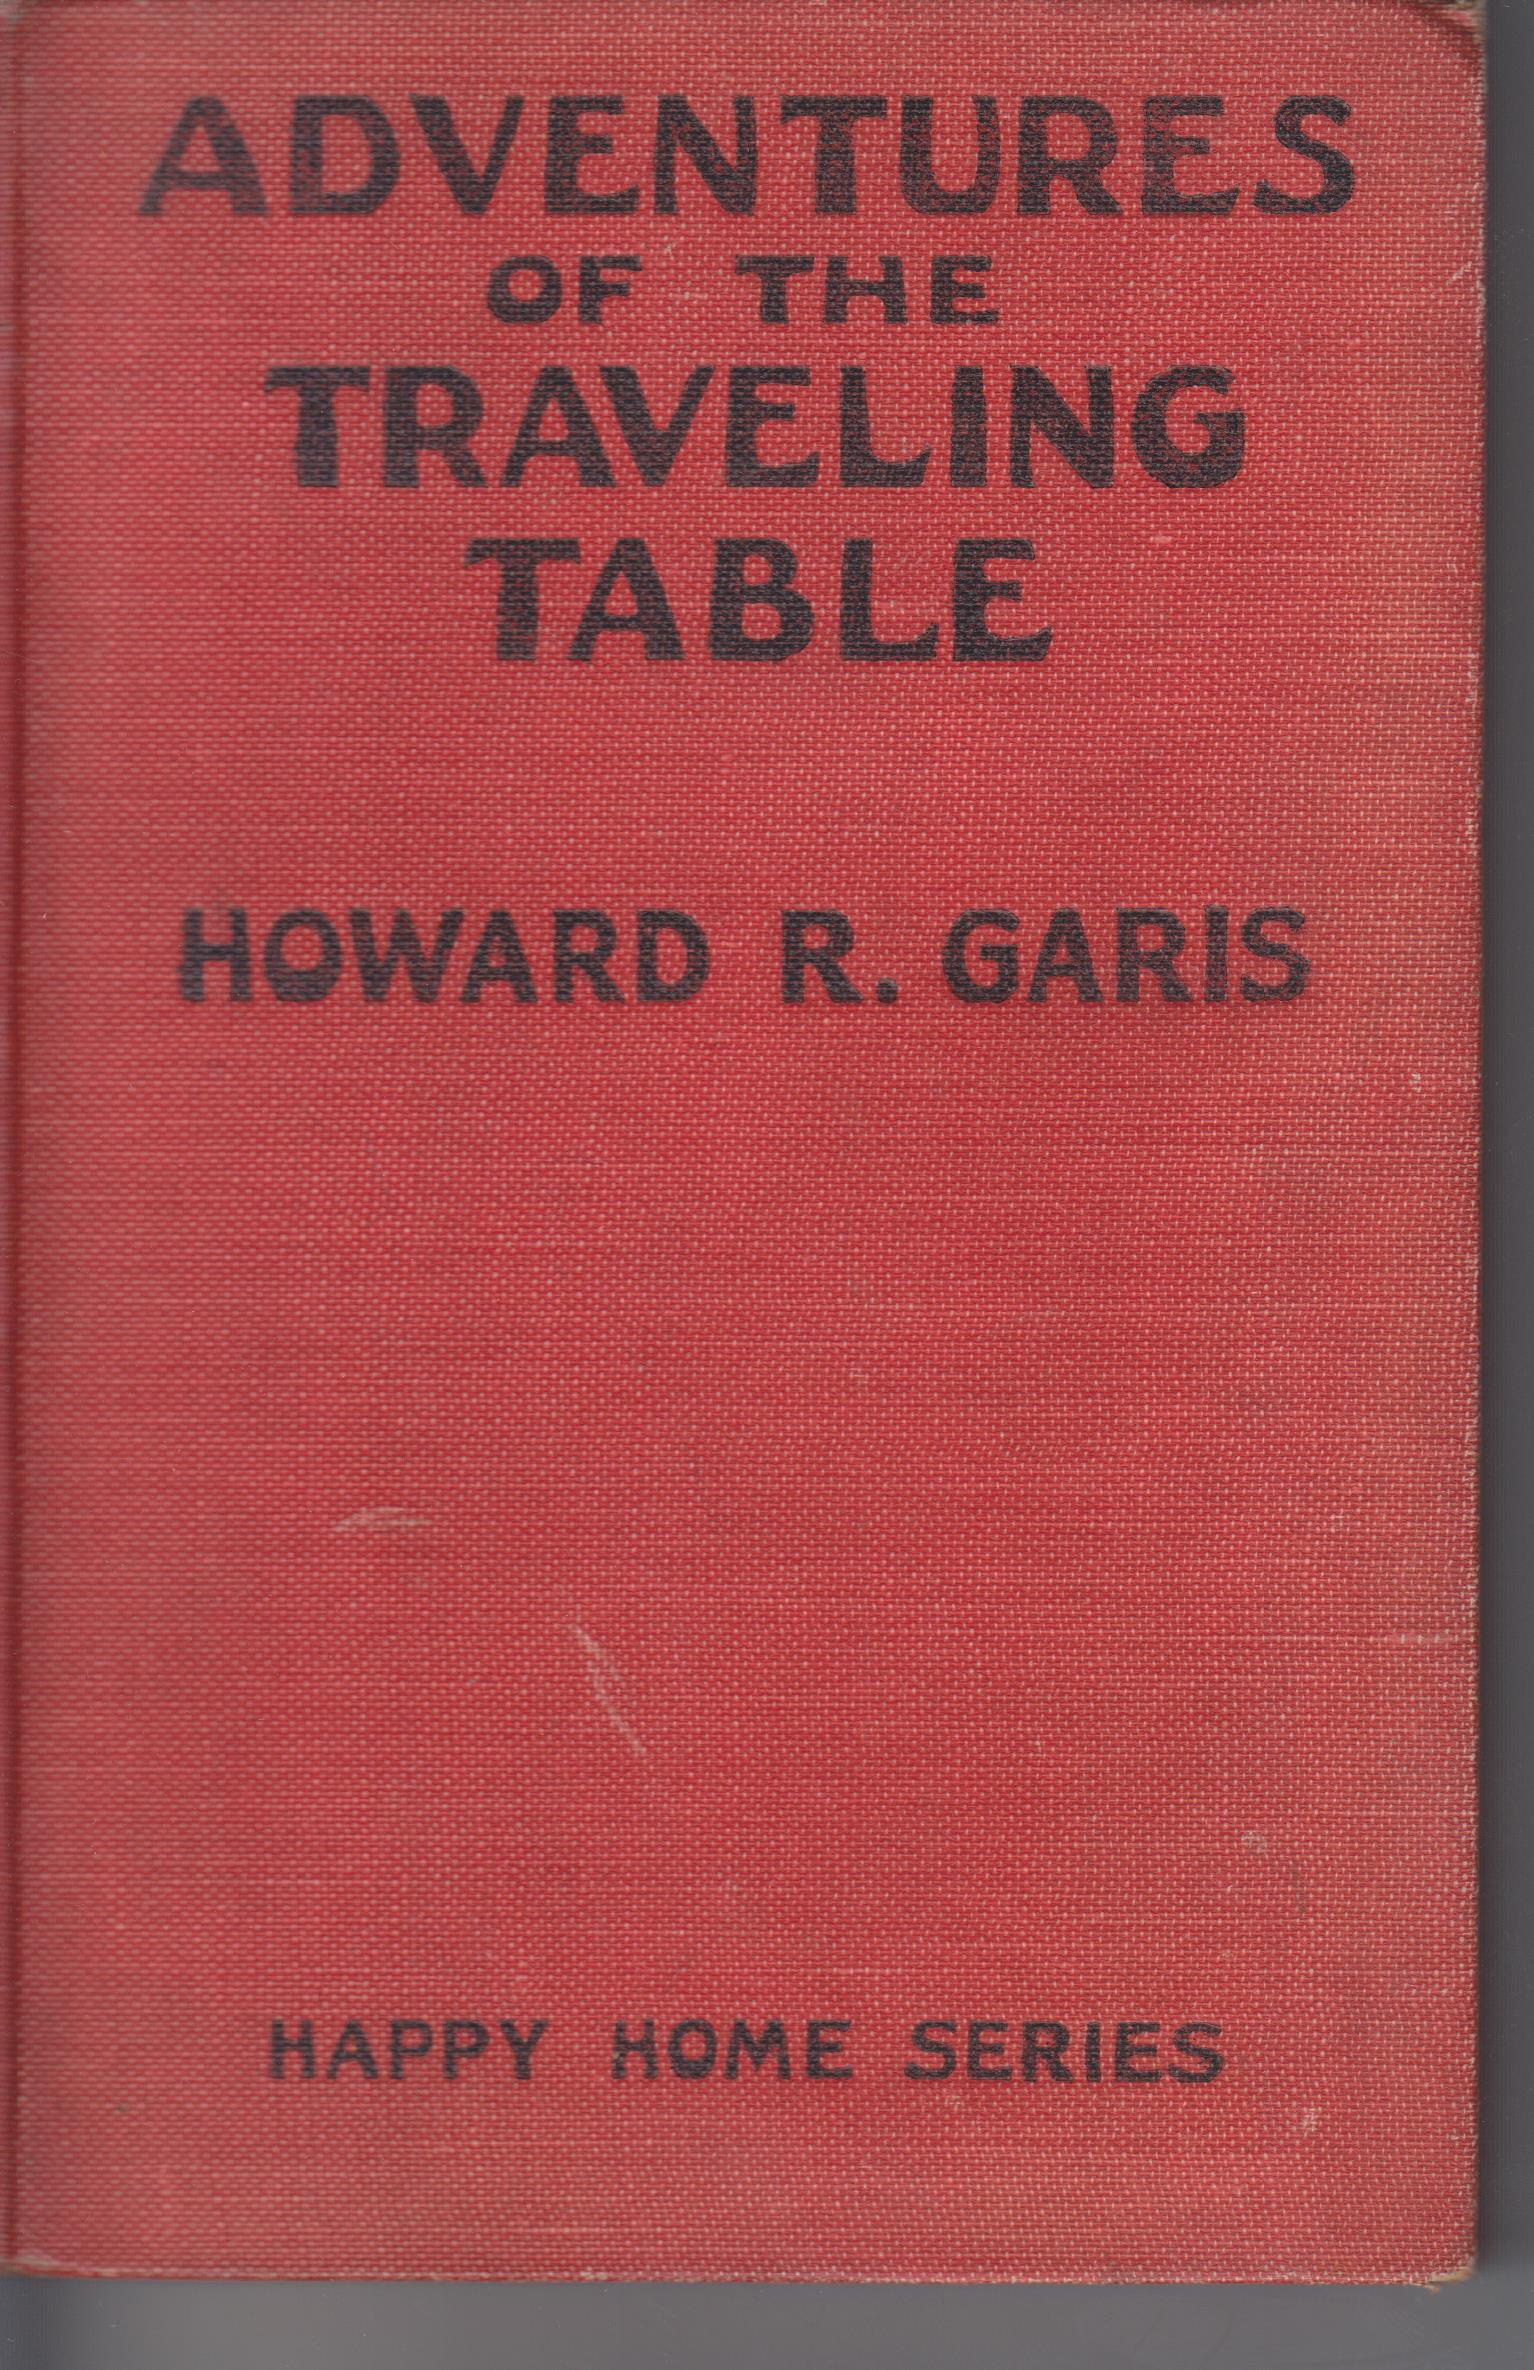 Image for The Adventures of the Traveling Table